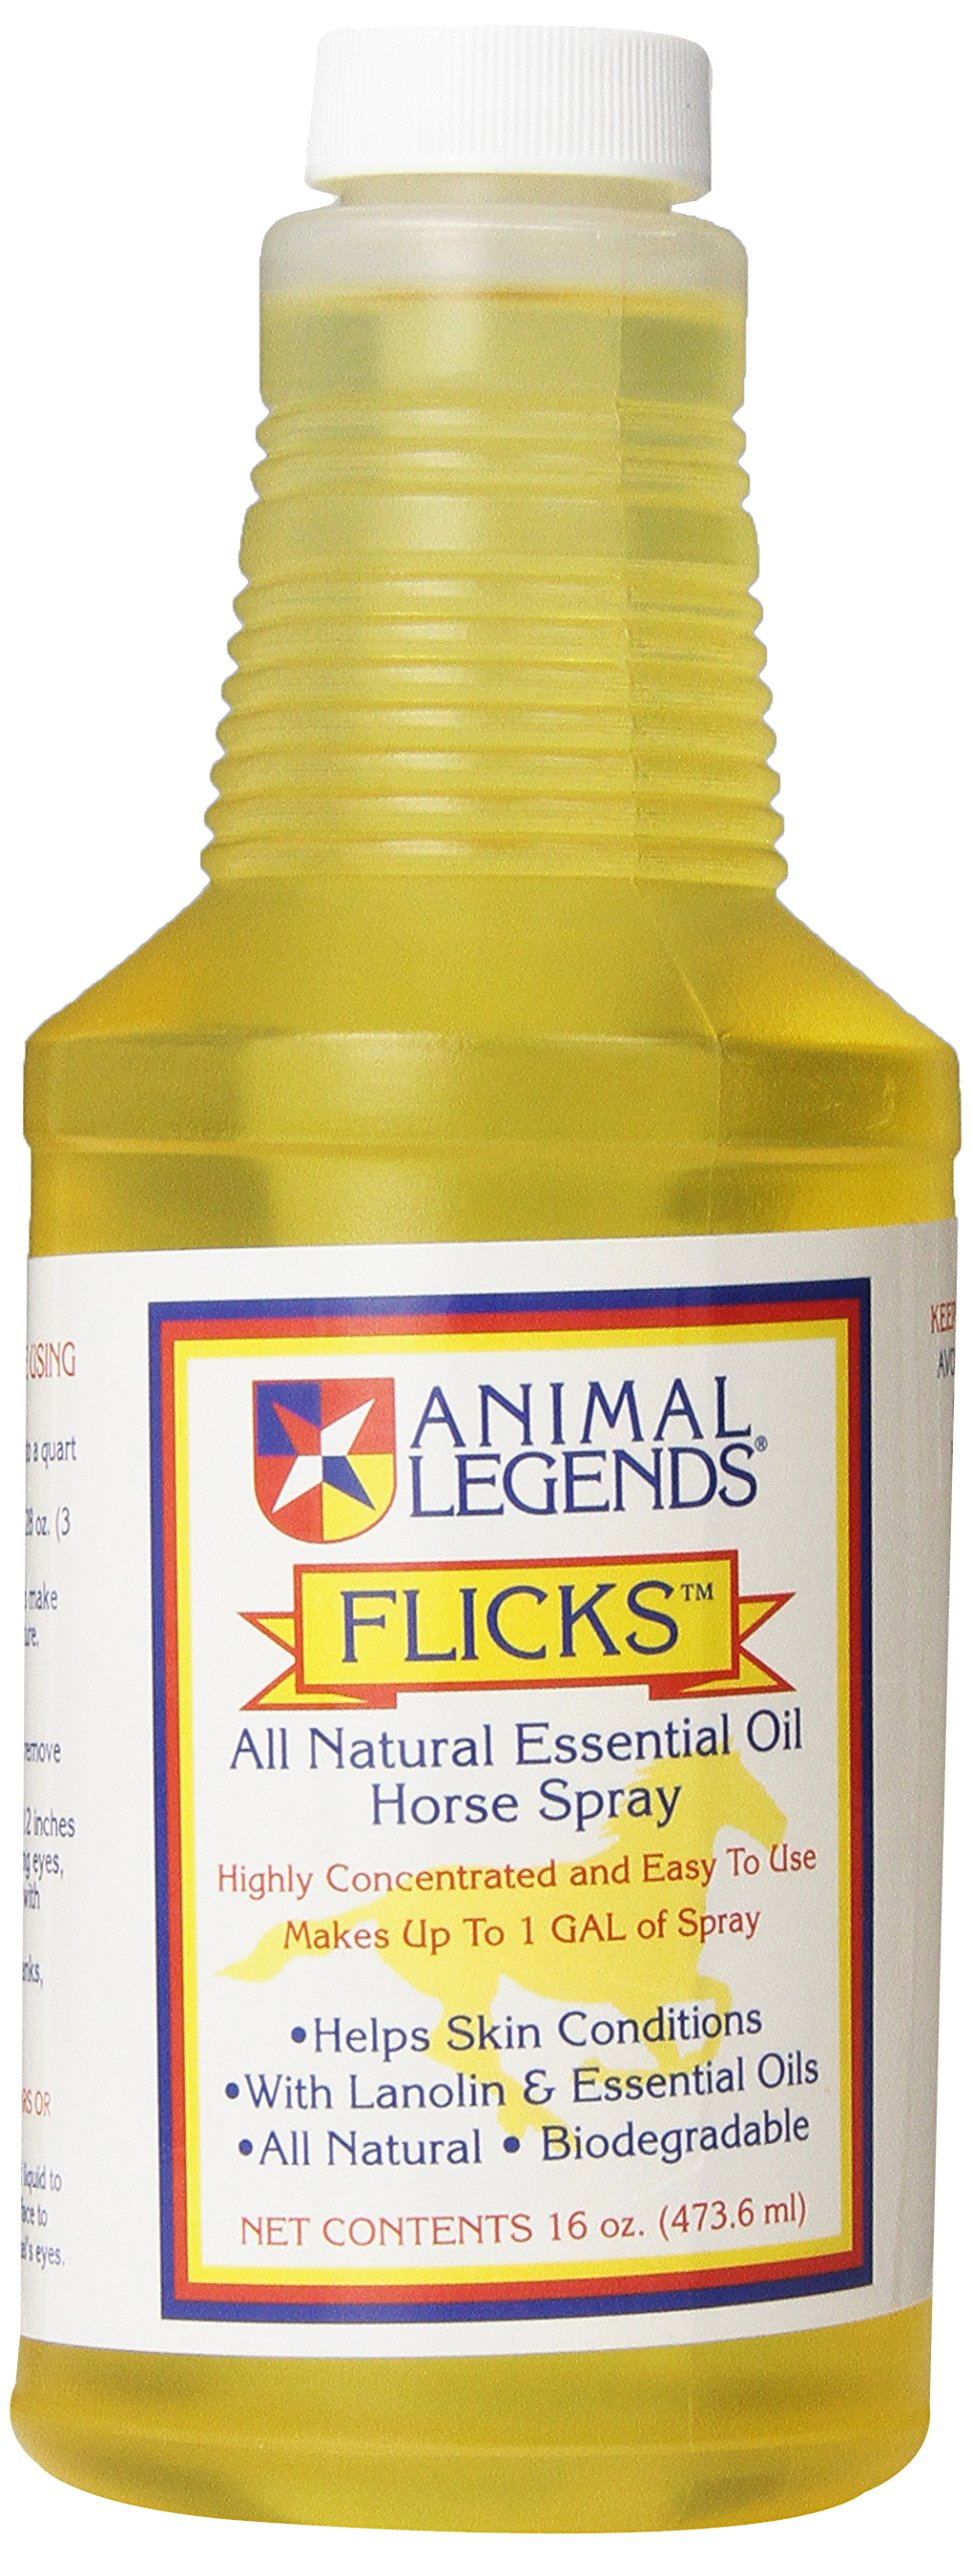 Animal Legends Flicks Horse Spray Refill Concentrate, 16-Ounce by Animal Legends